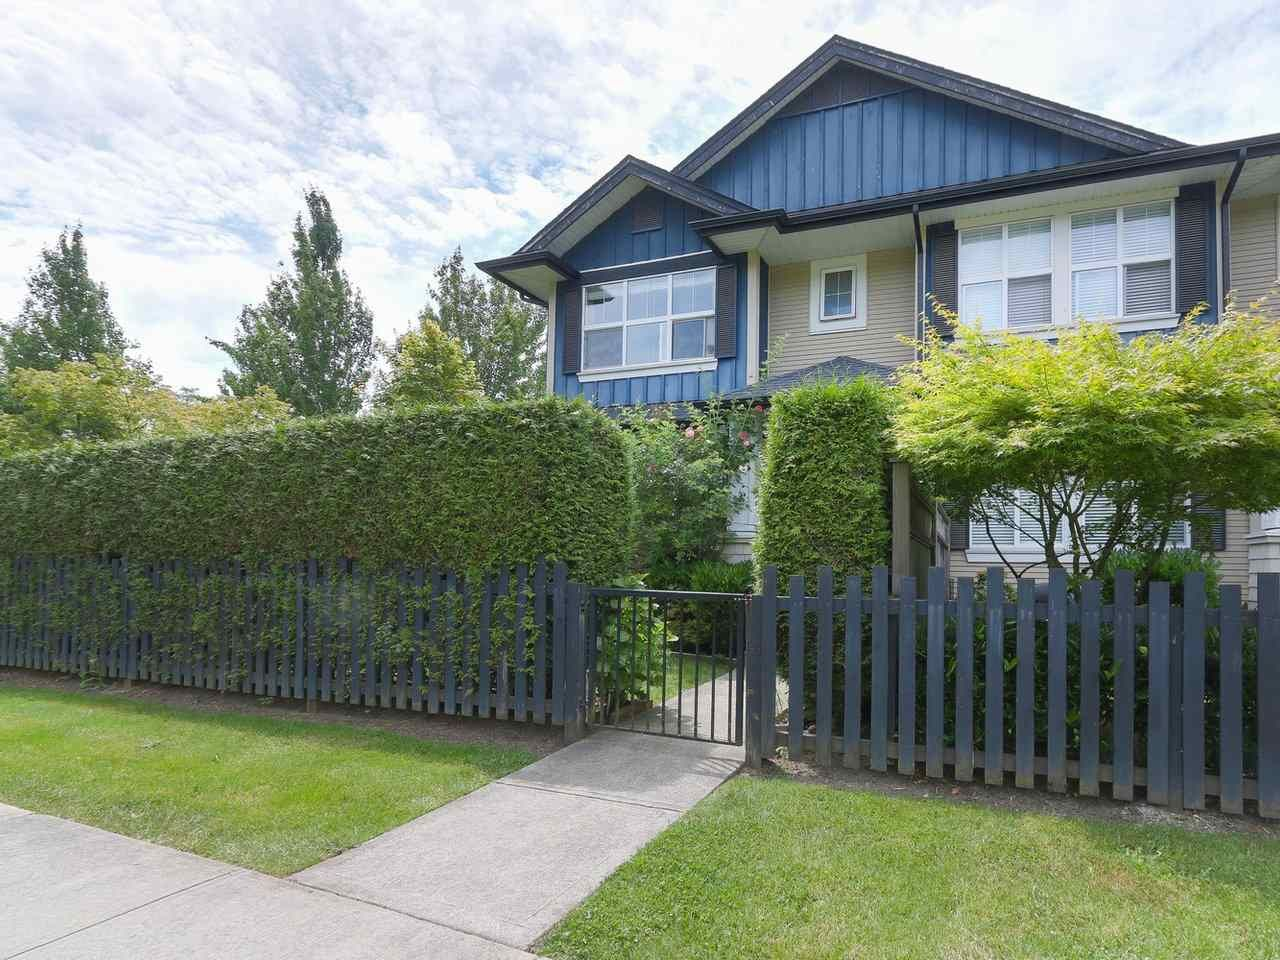 Main Photo: 1 18199 70 AVENUE in : Cloverdale BC Townhouse for sale : MLS®# R2418481